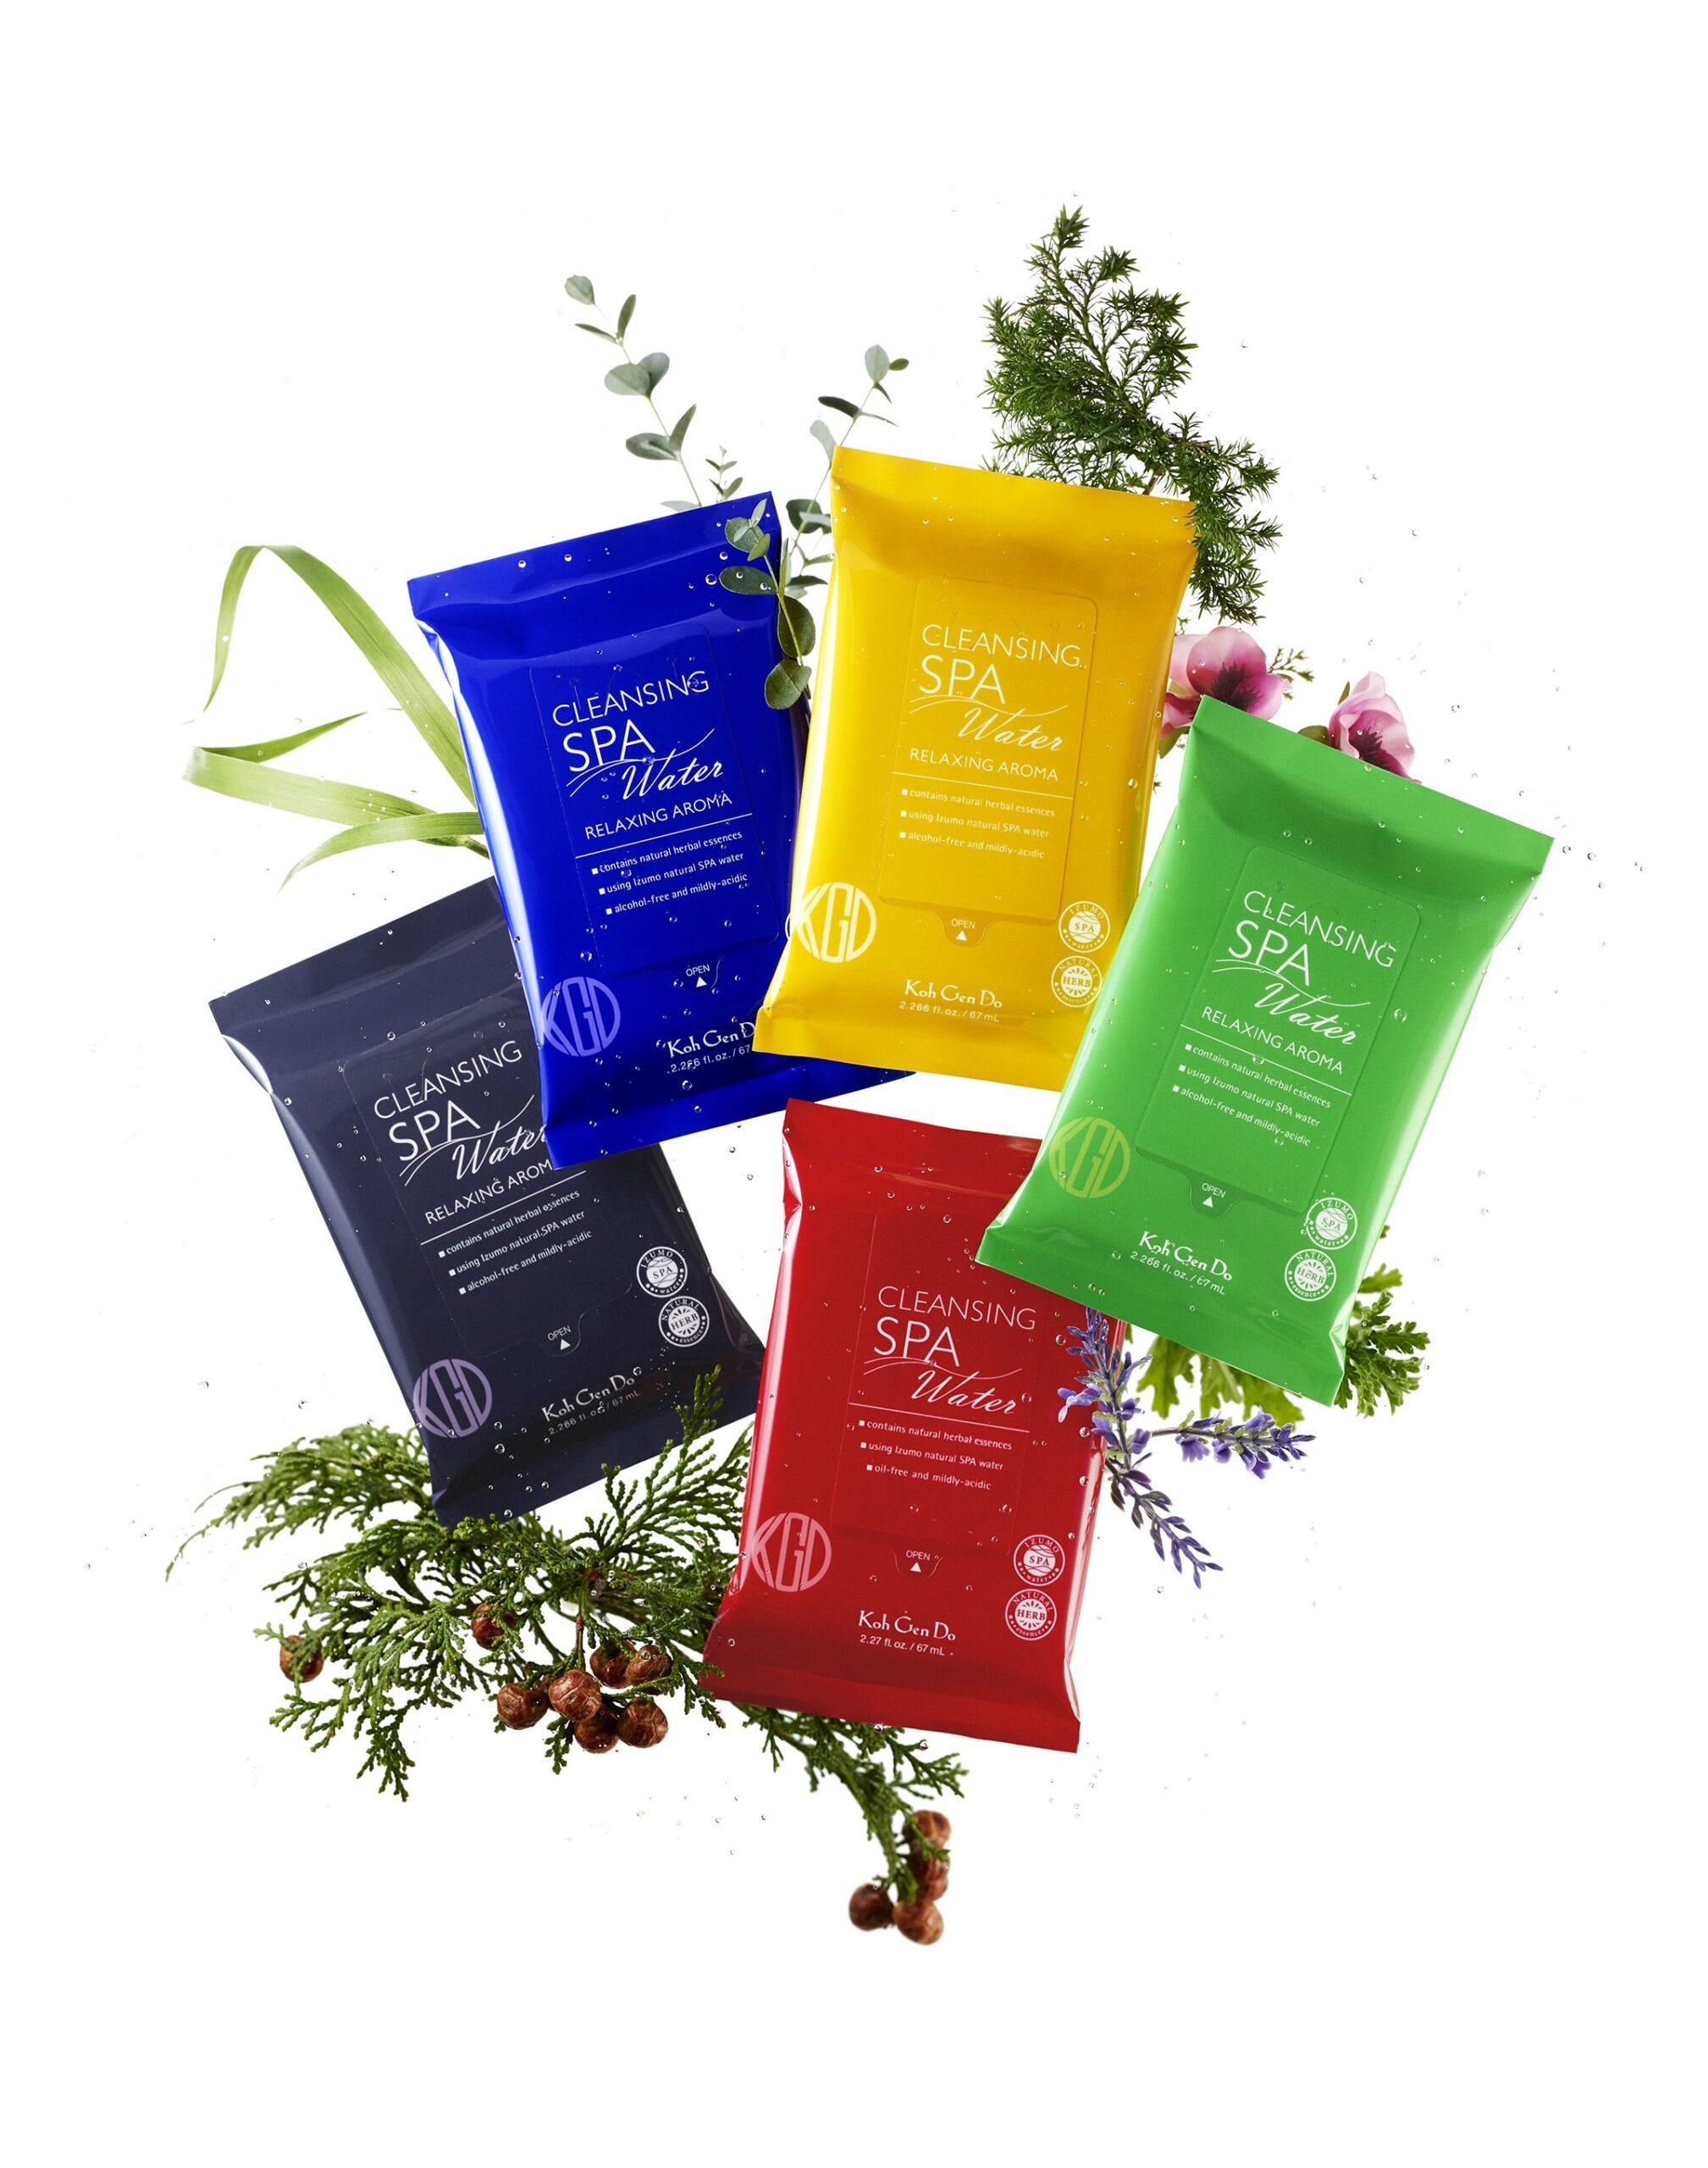 Koh Gen Do Spa Cleansing Cloths Relaxing Aromas